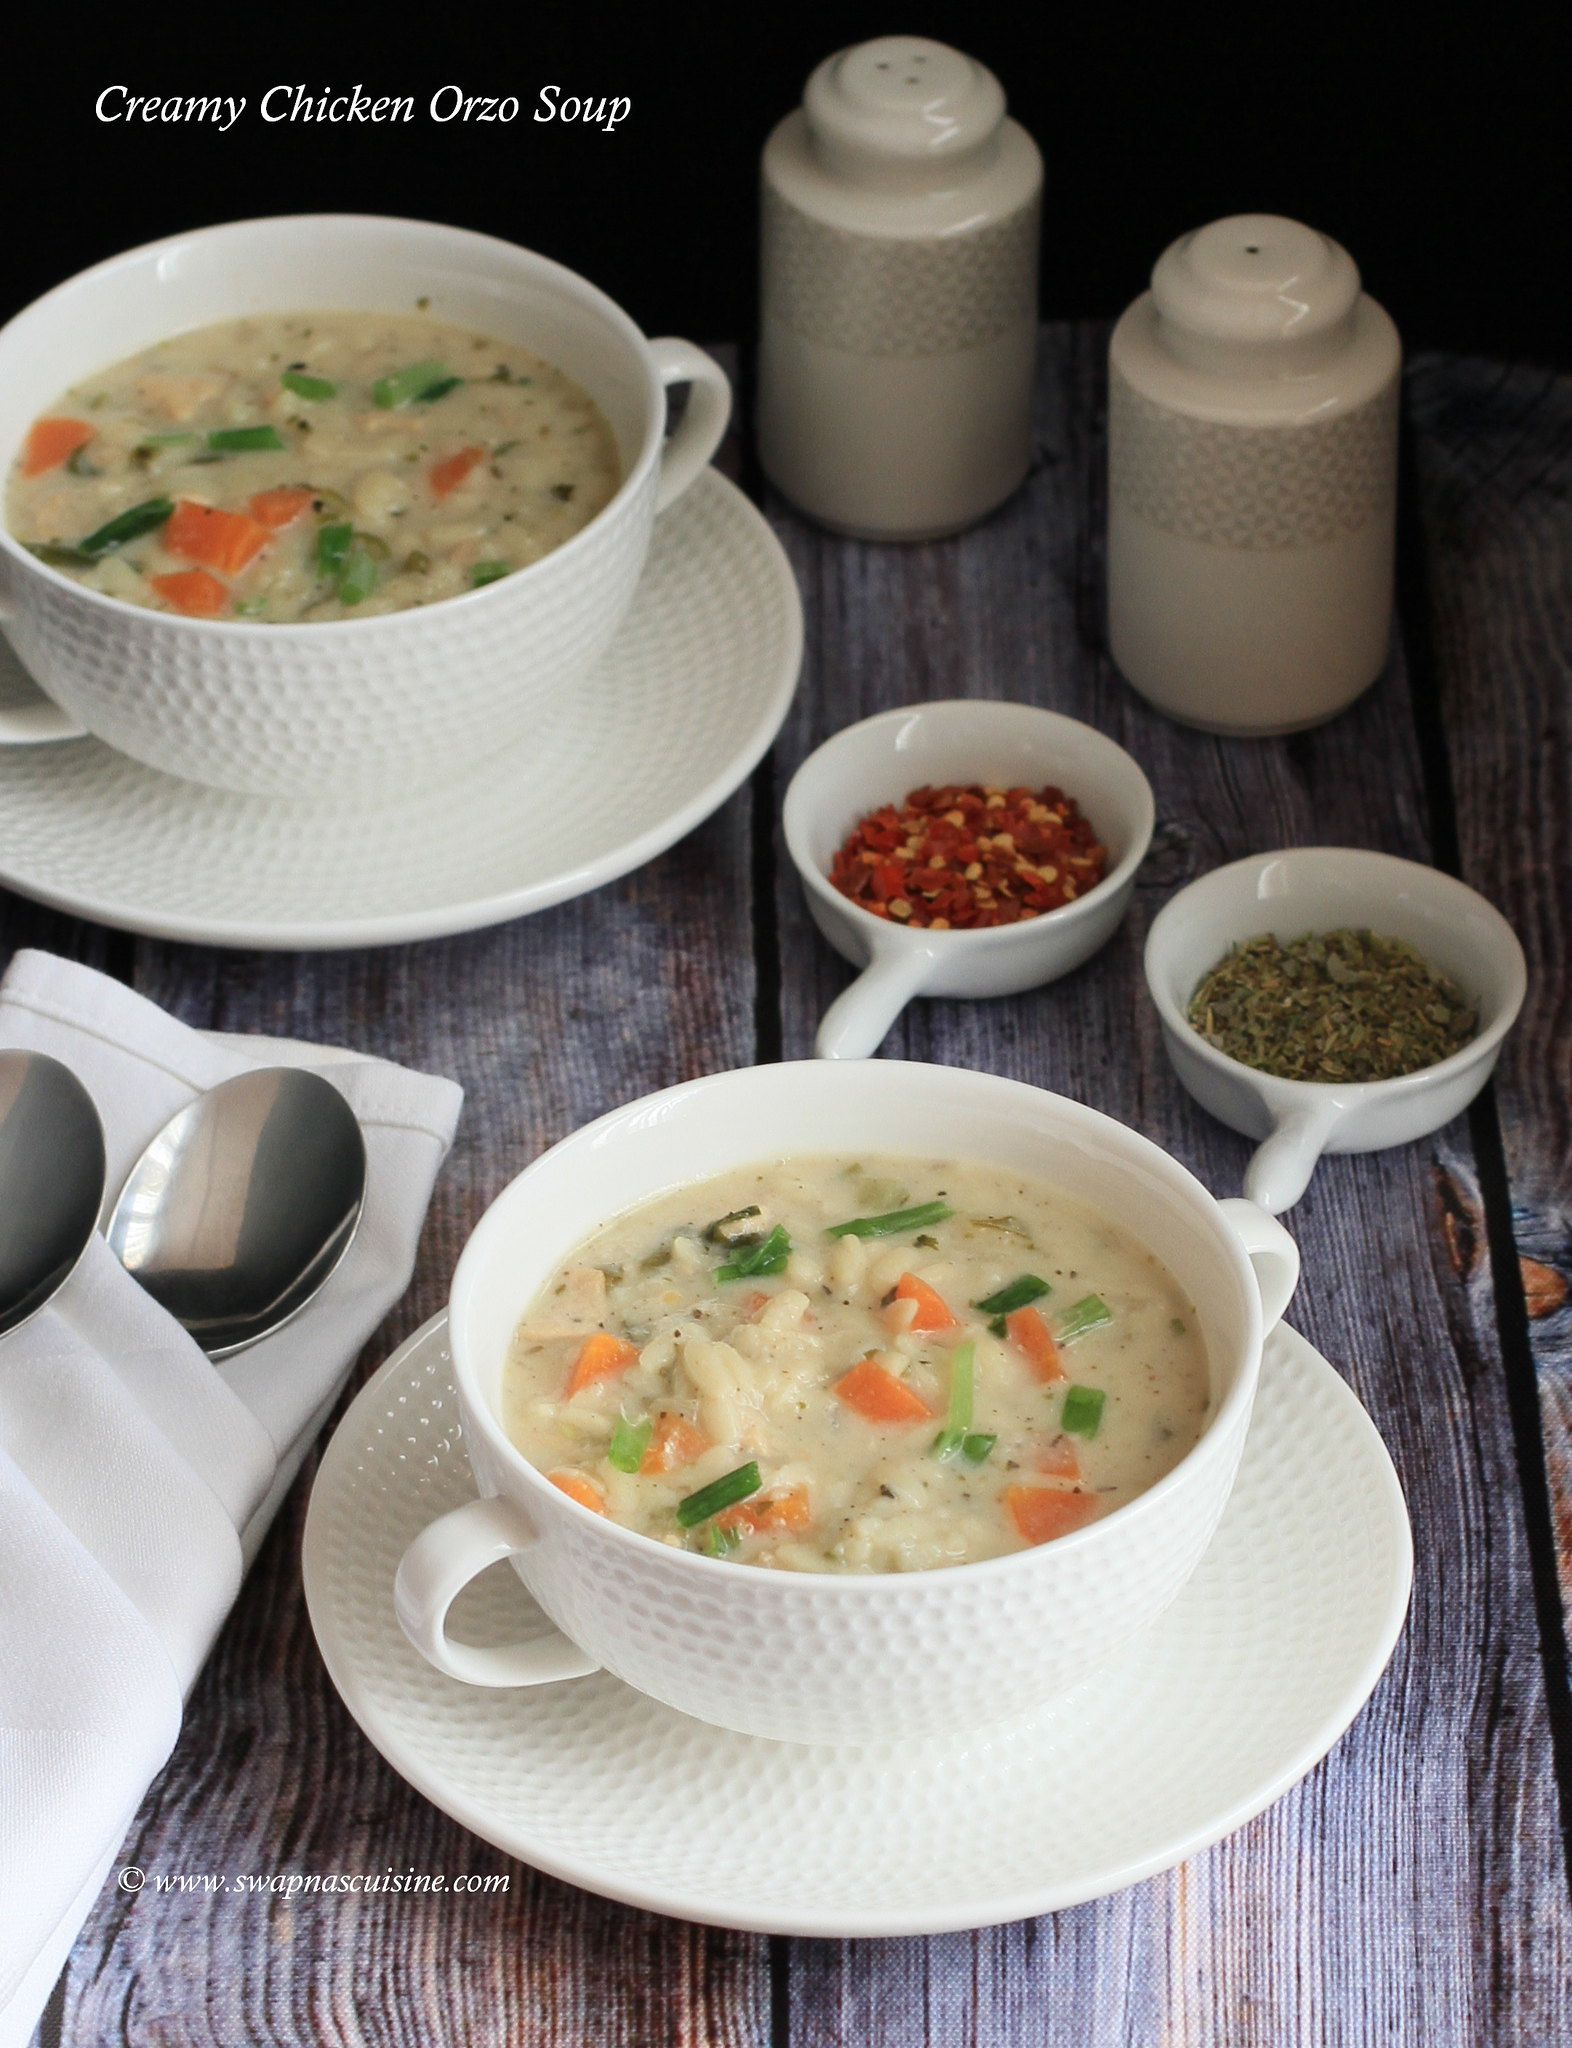 How to make Creamy Chicken Orzo Soup